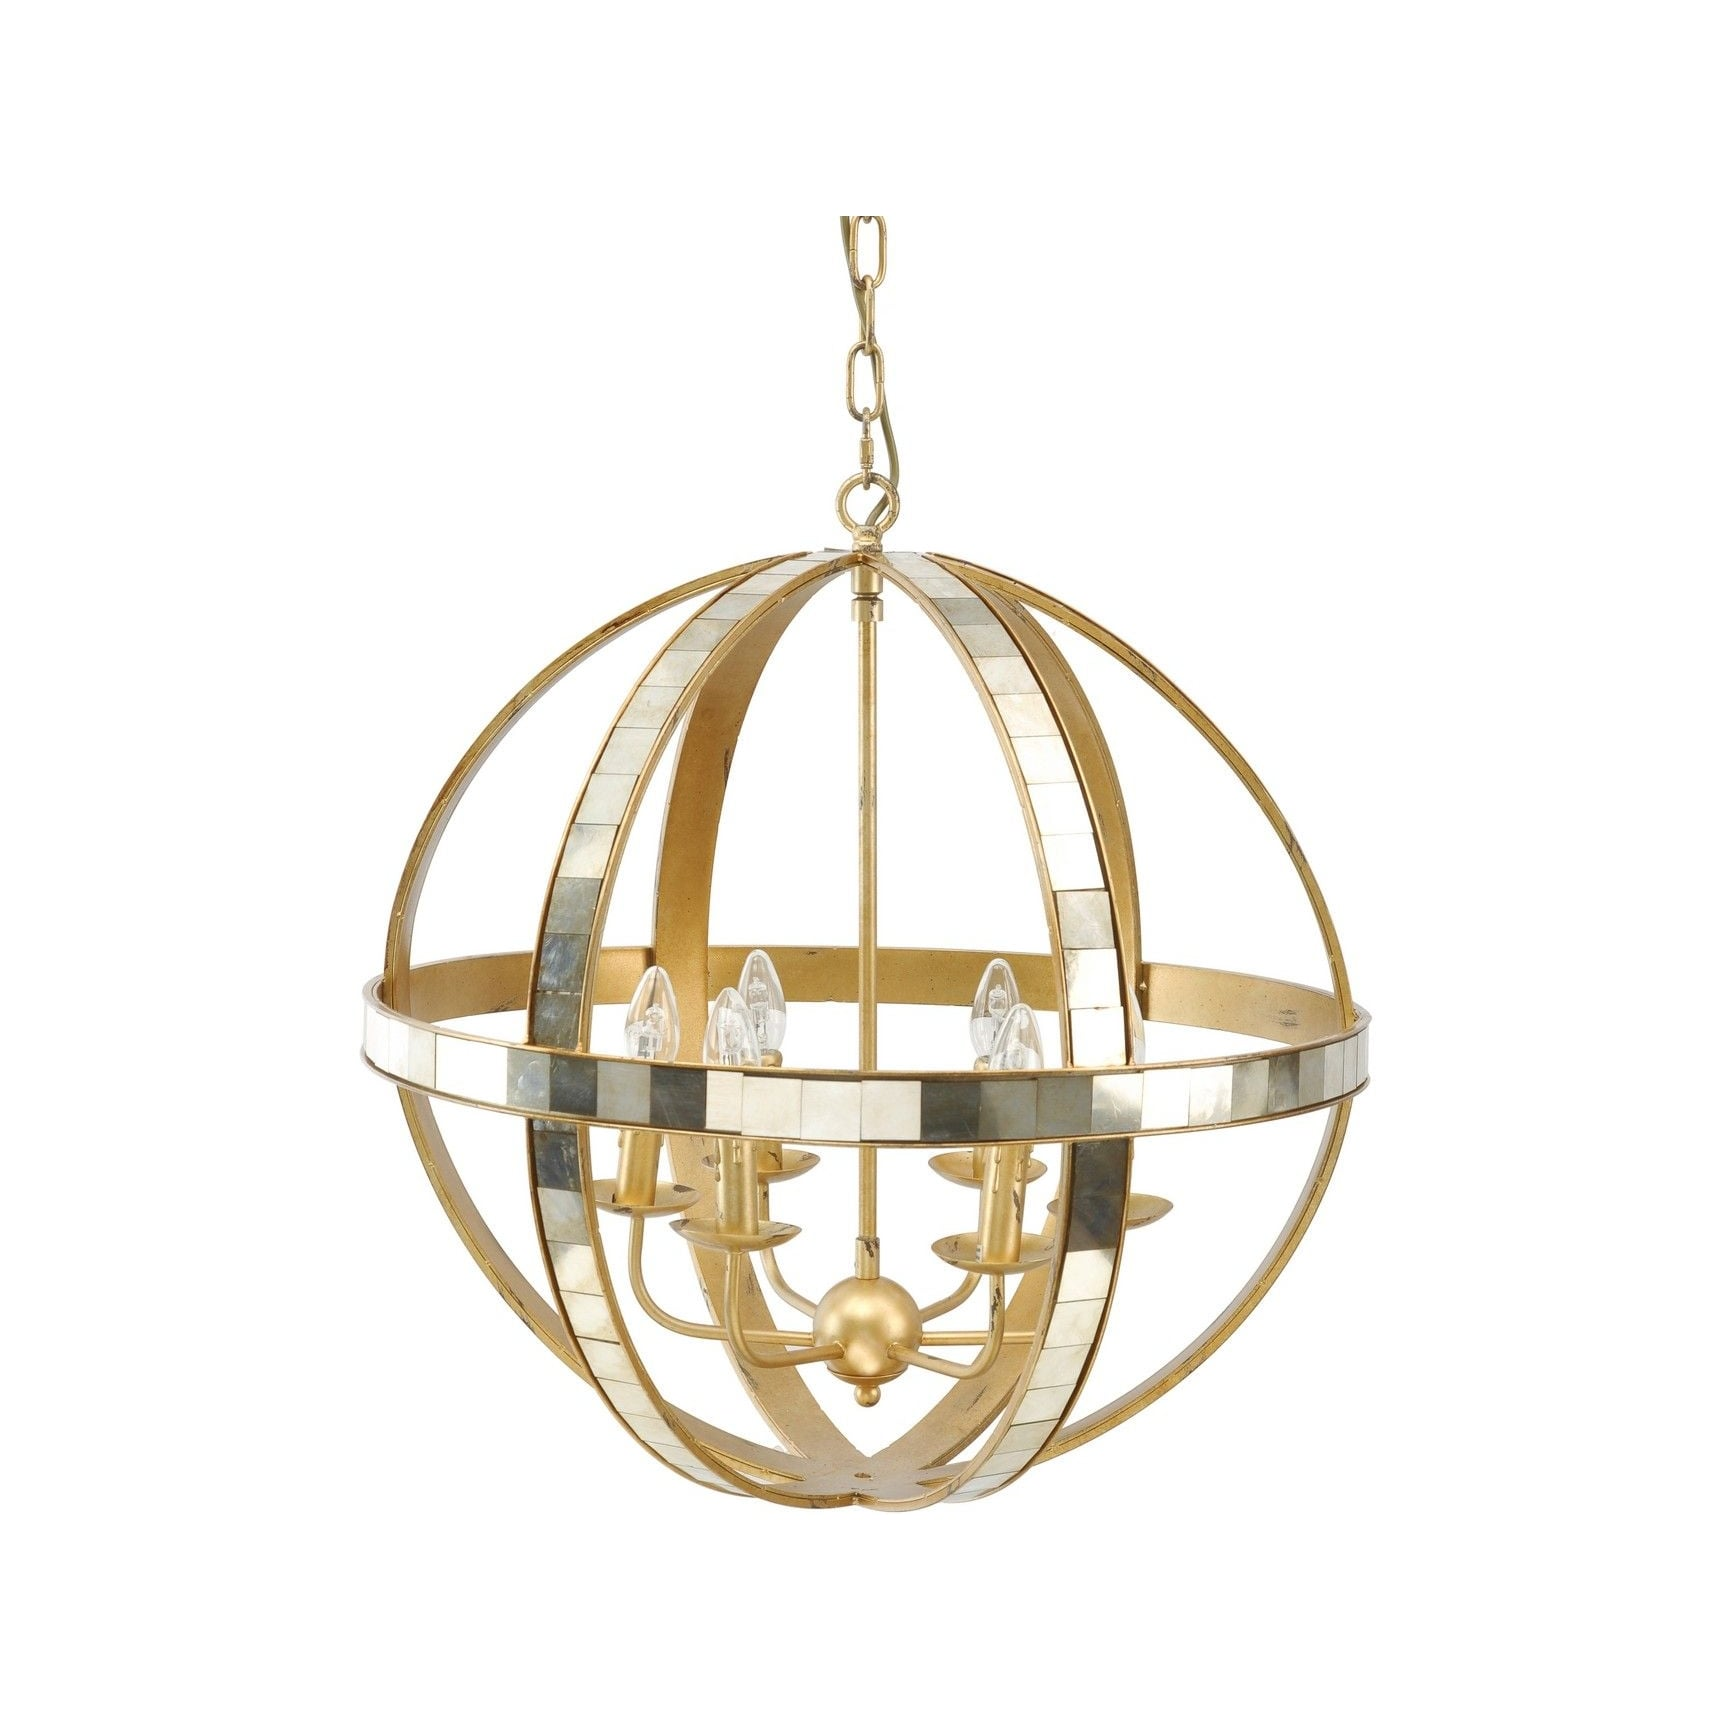 Gold Orb Chandelier Modern Ceiling Light Swanky Interiors